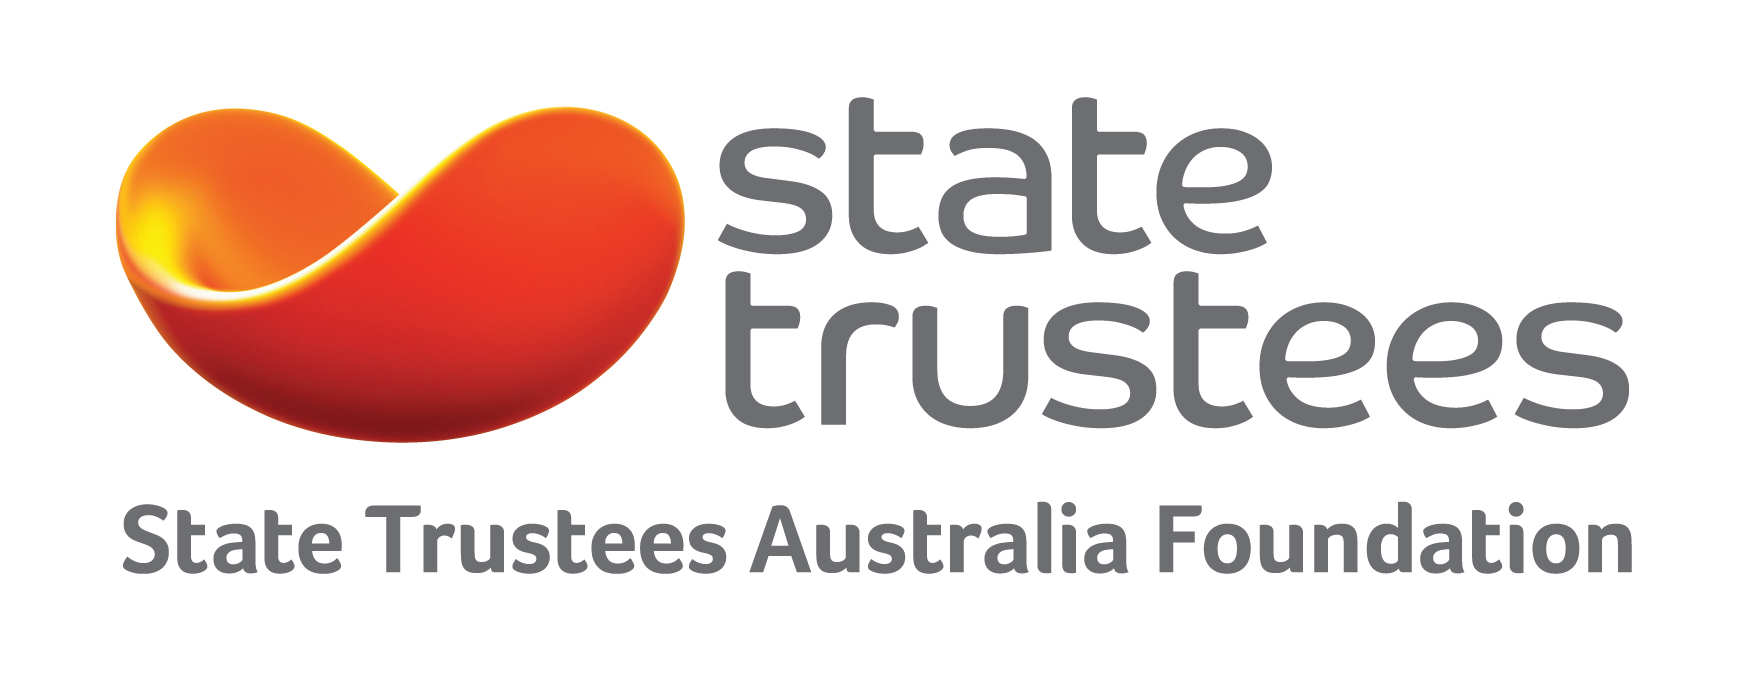 State Trustees Australia Foundation Logo